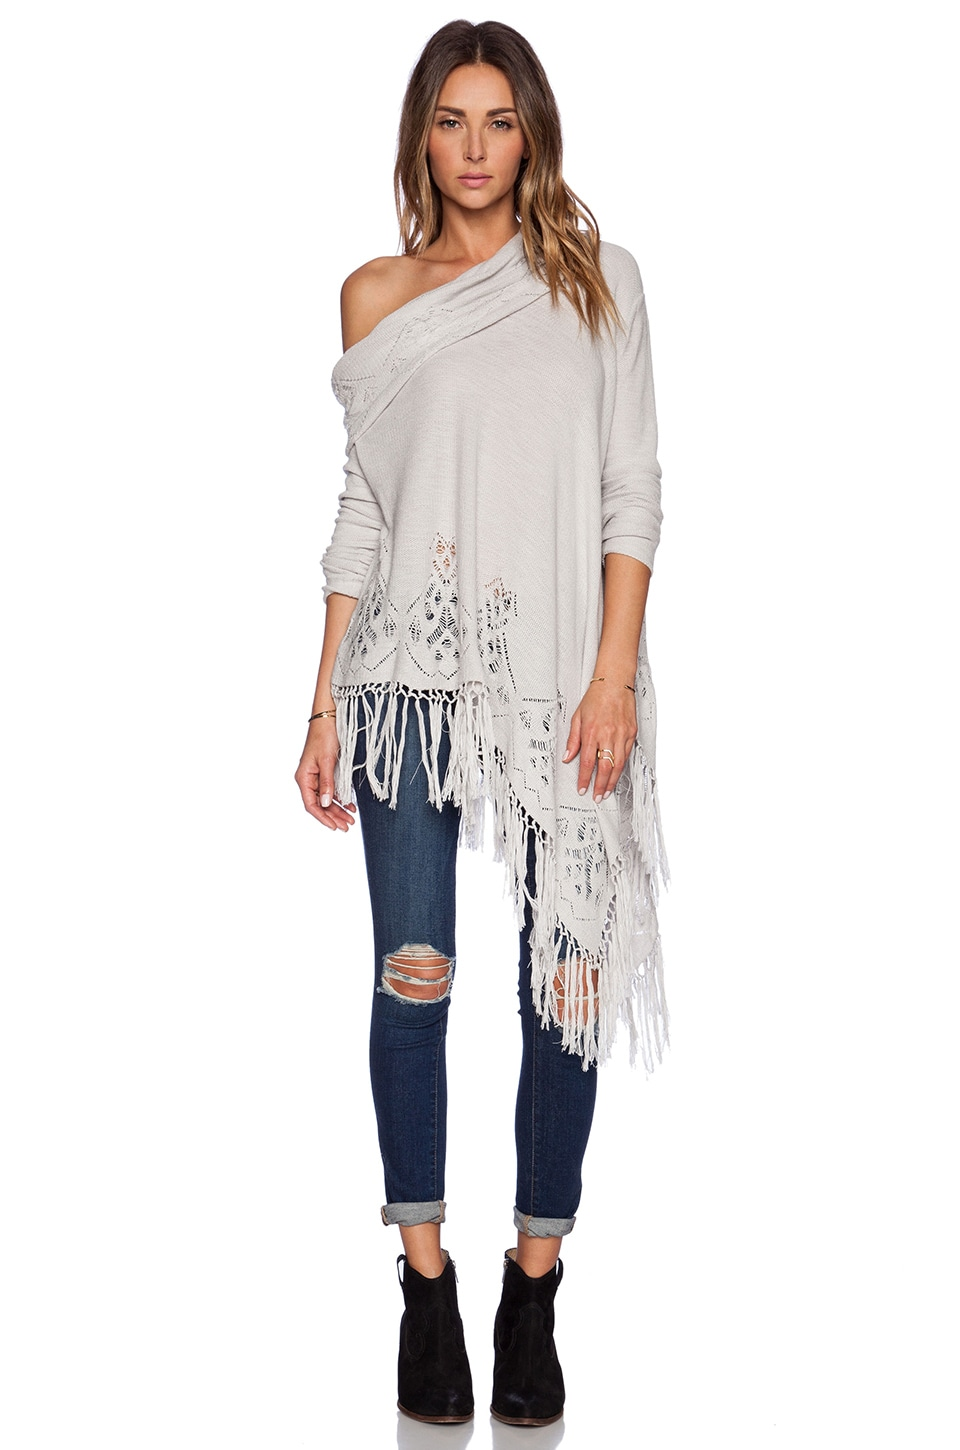 Free People Temptress Cowl Sweater in Silver Combo